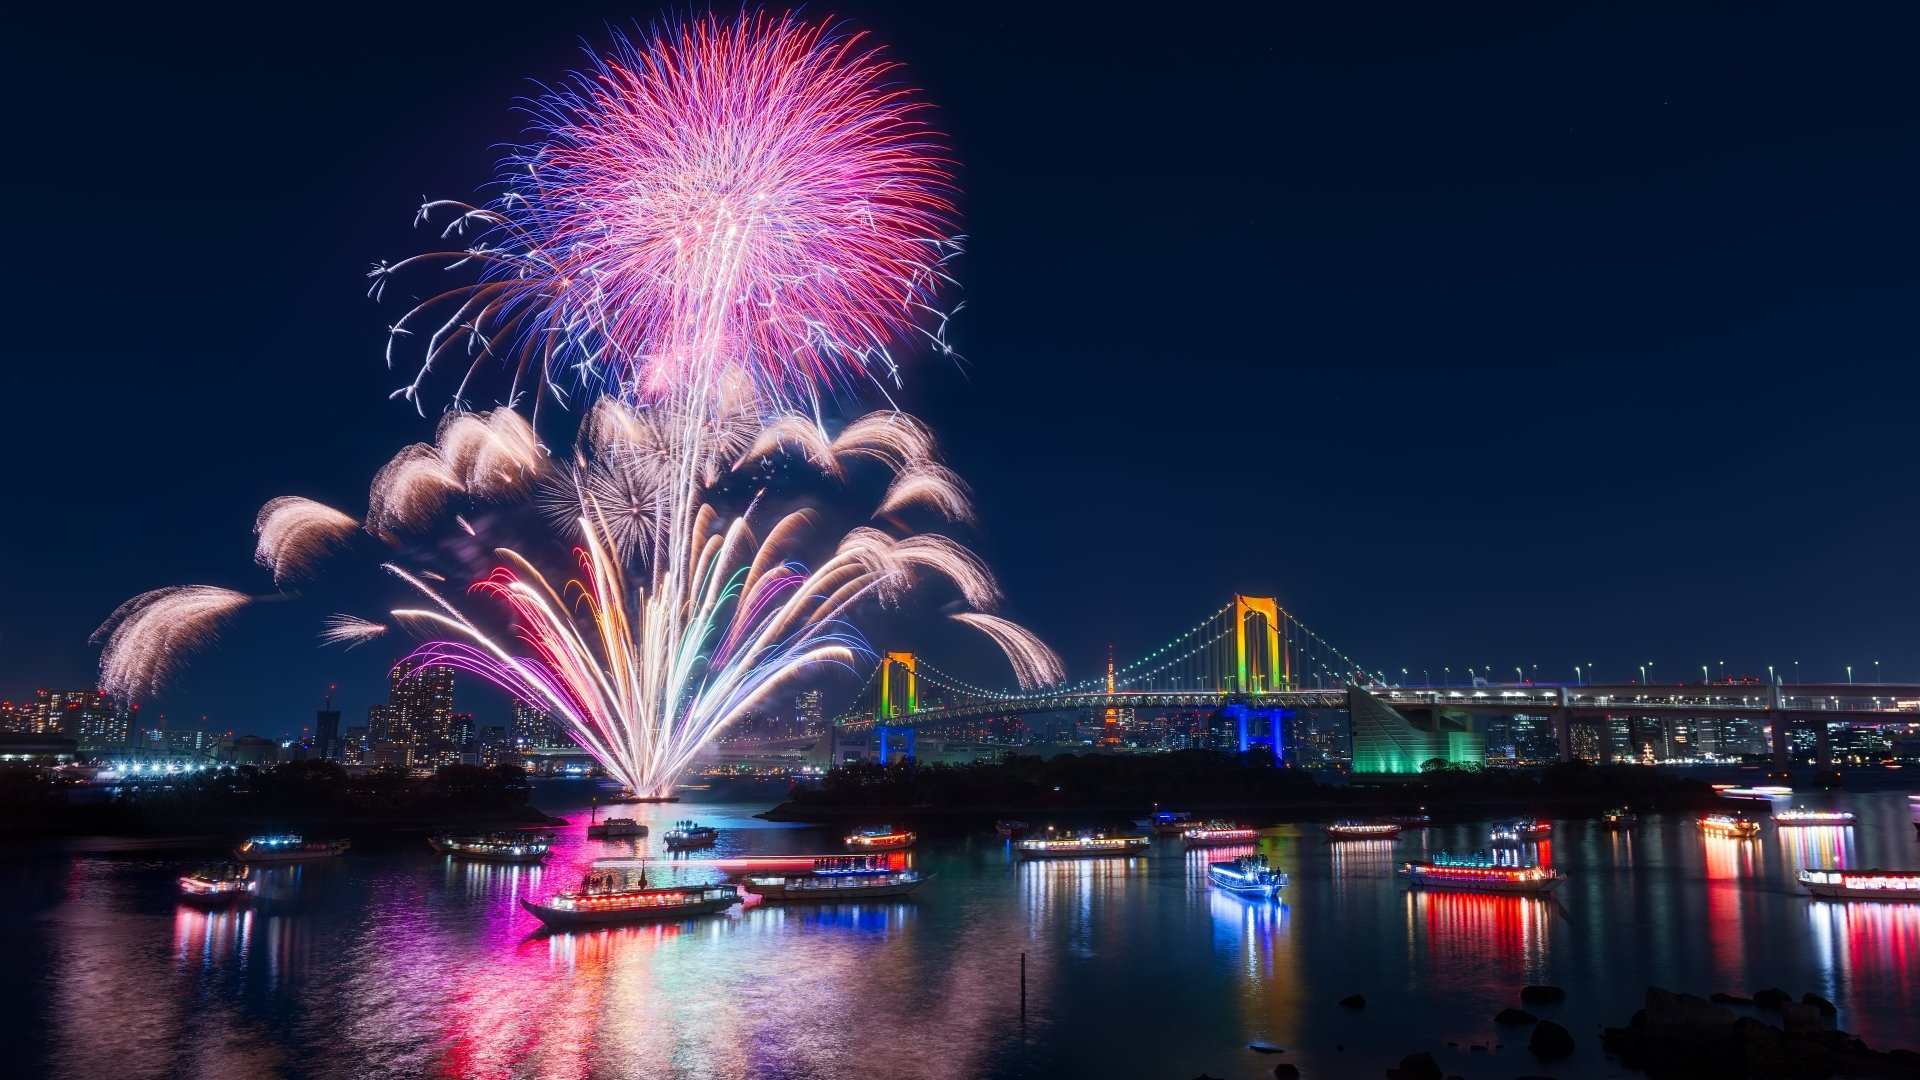 Hd Wallpaper Fireworks: 286 Fireworks HD Wallpapers